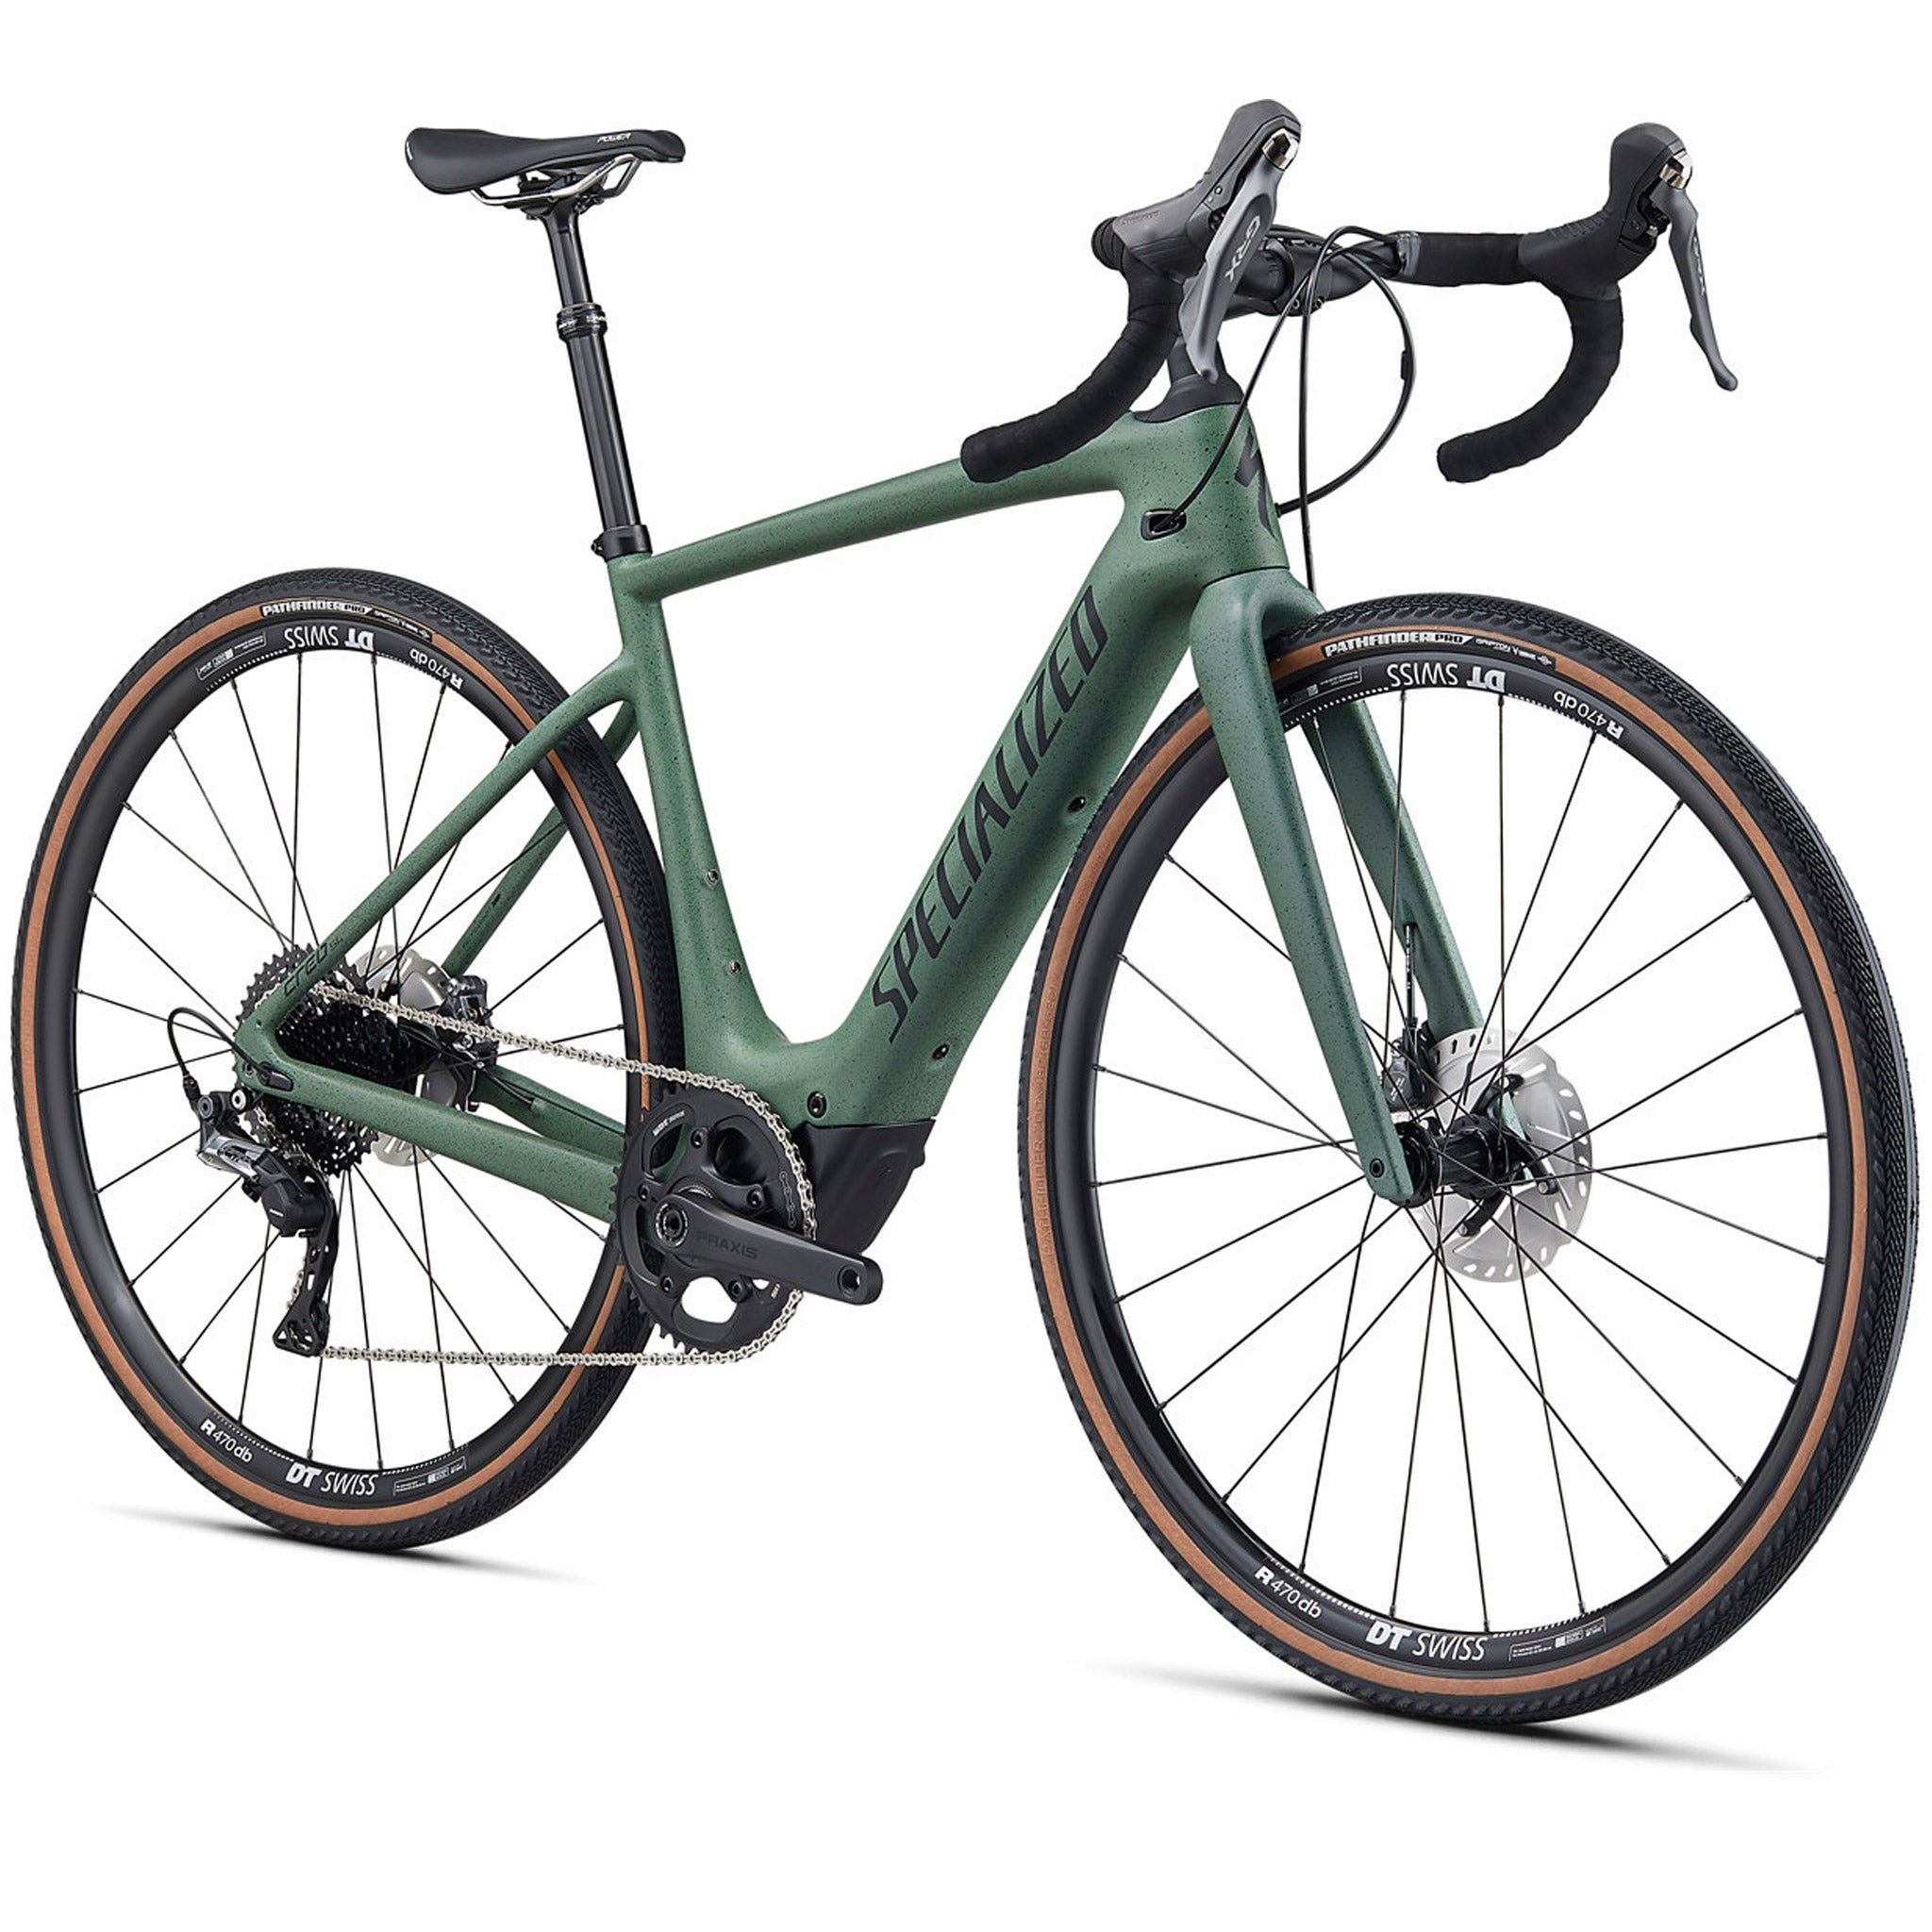 2021 Specialized Turbo Creo SL Comp Carbon Evo, Satin Sage Green, E-Bike Woolys Wheels Sydney